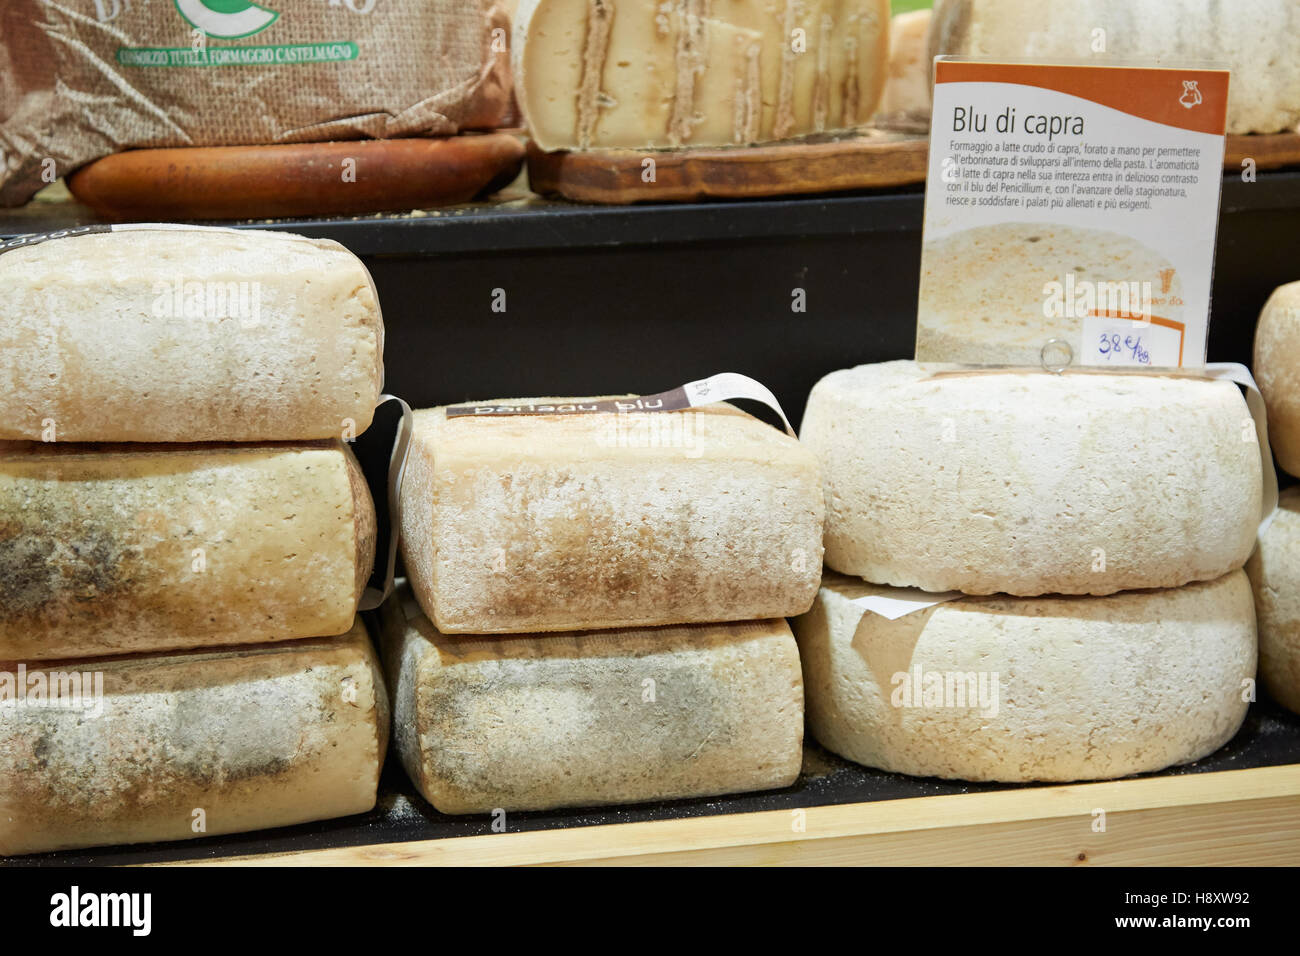 Goat cheese on sale during Alba White Truffle Fair in Alba, Italy - Stock Image